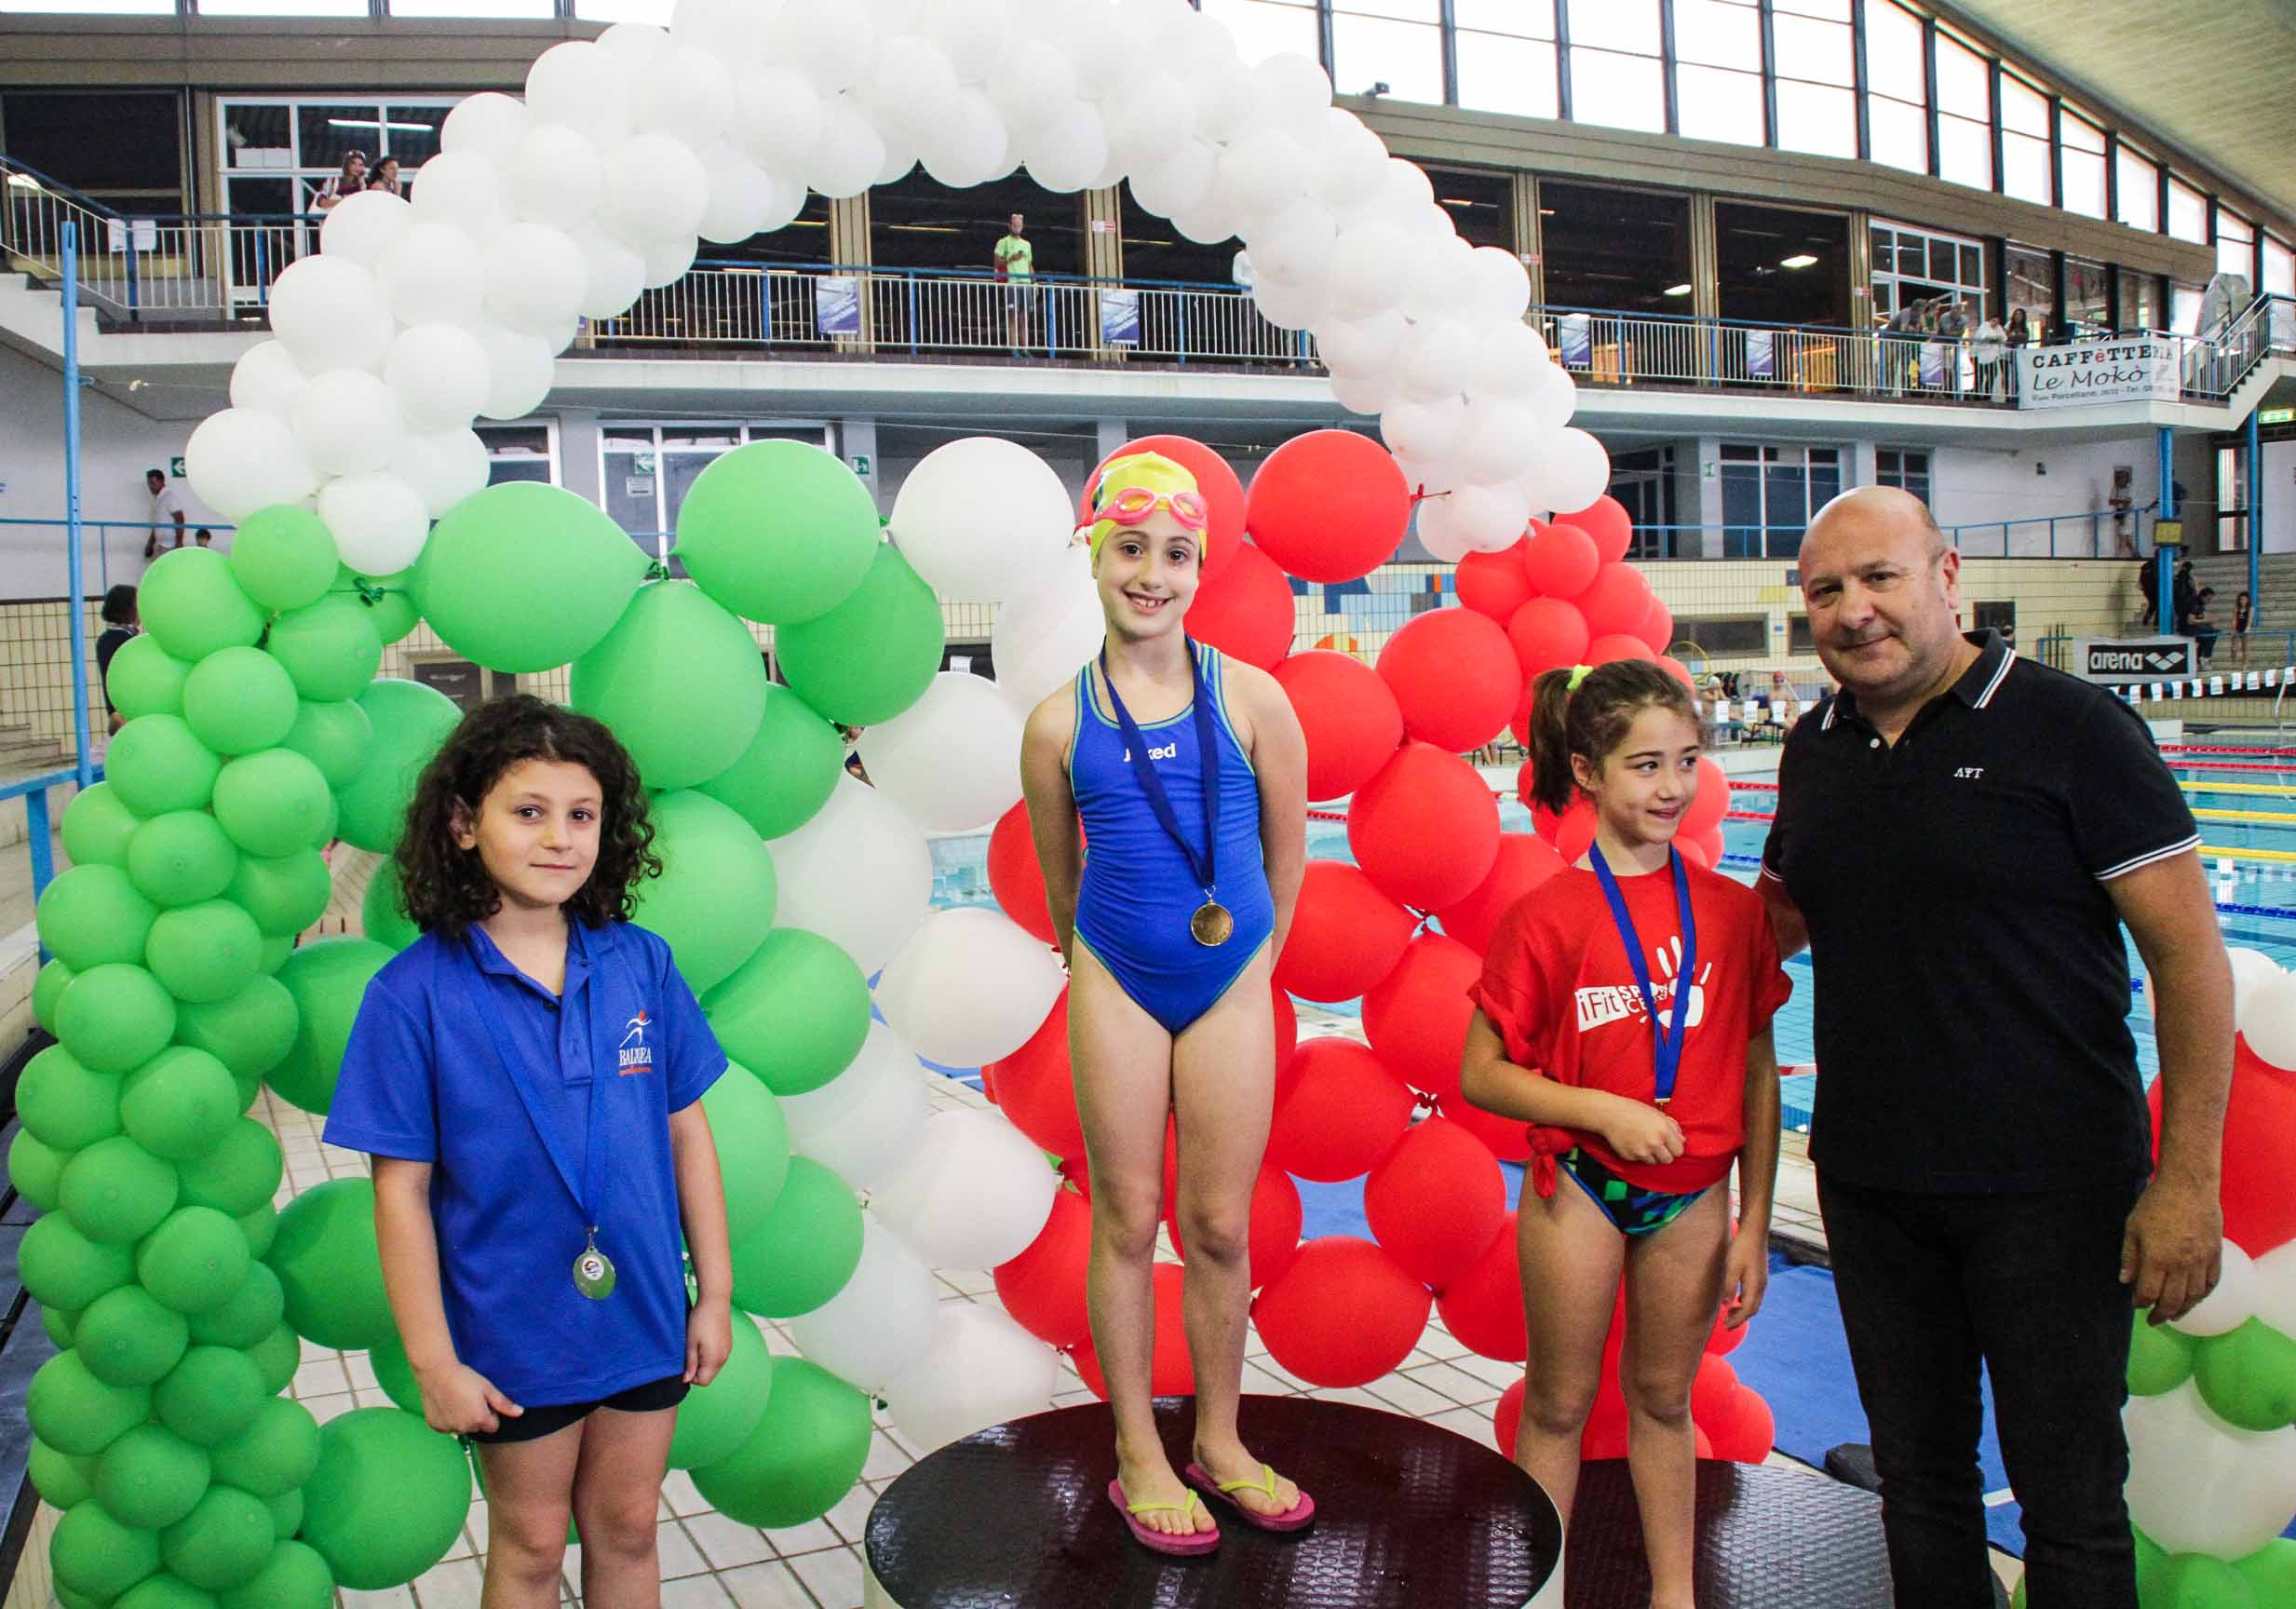 TUTTI IN PISCINA 2015 - 1 - GUARDA ORA